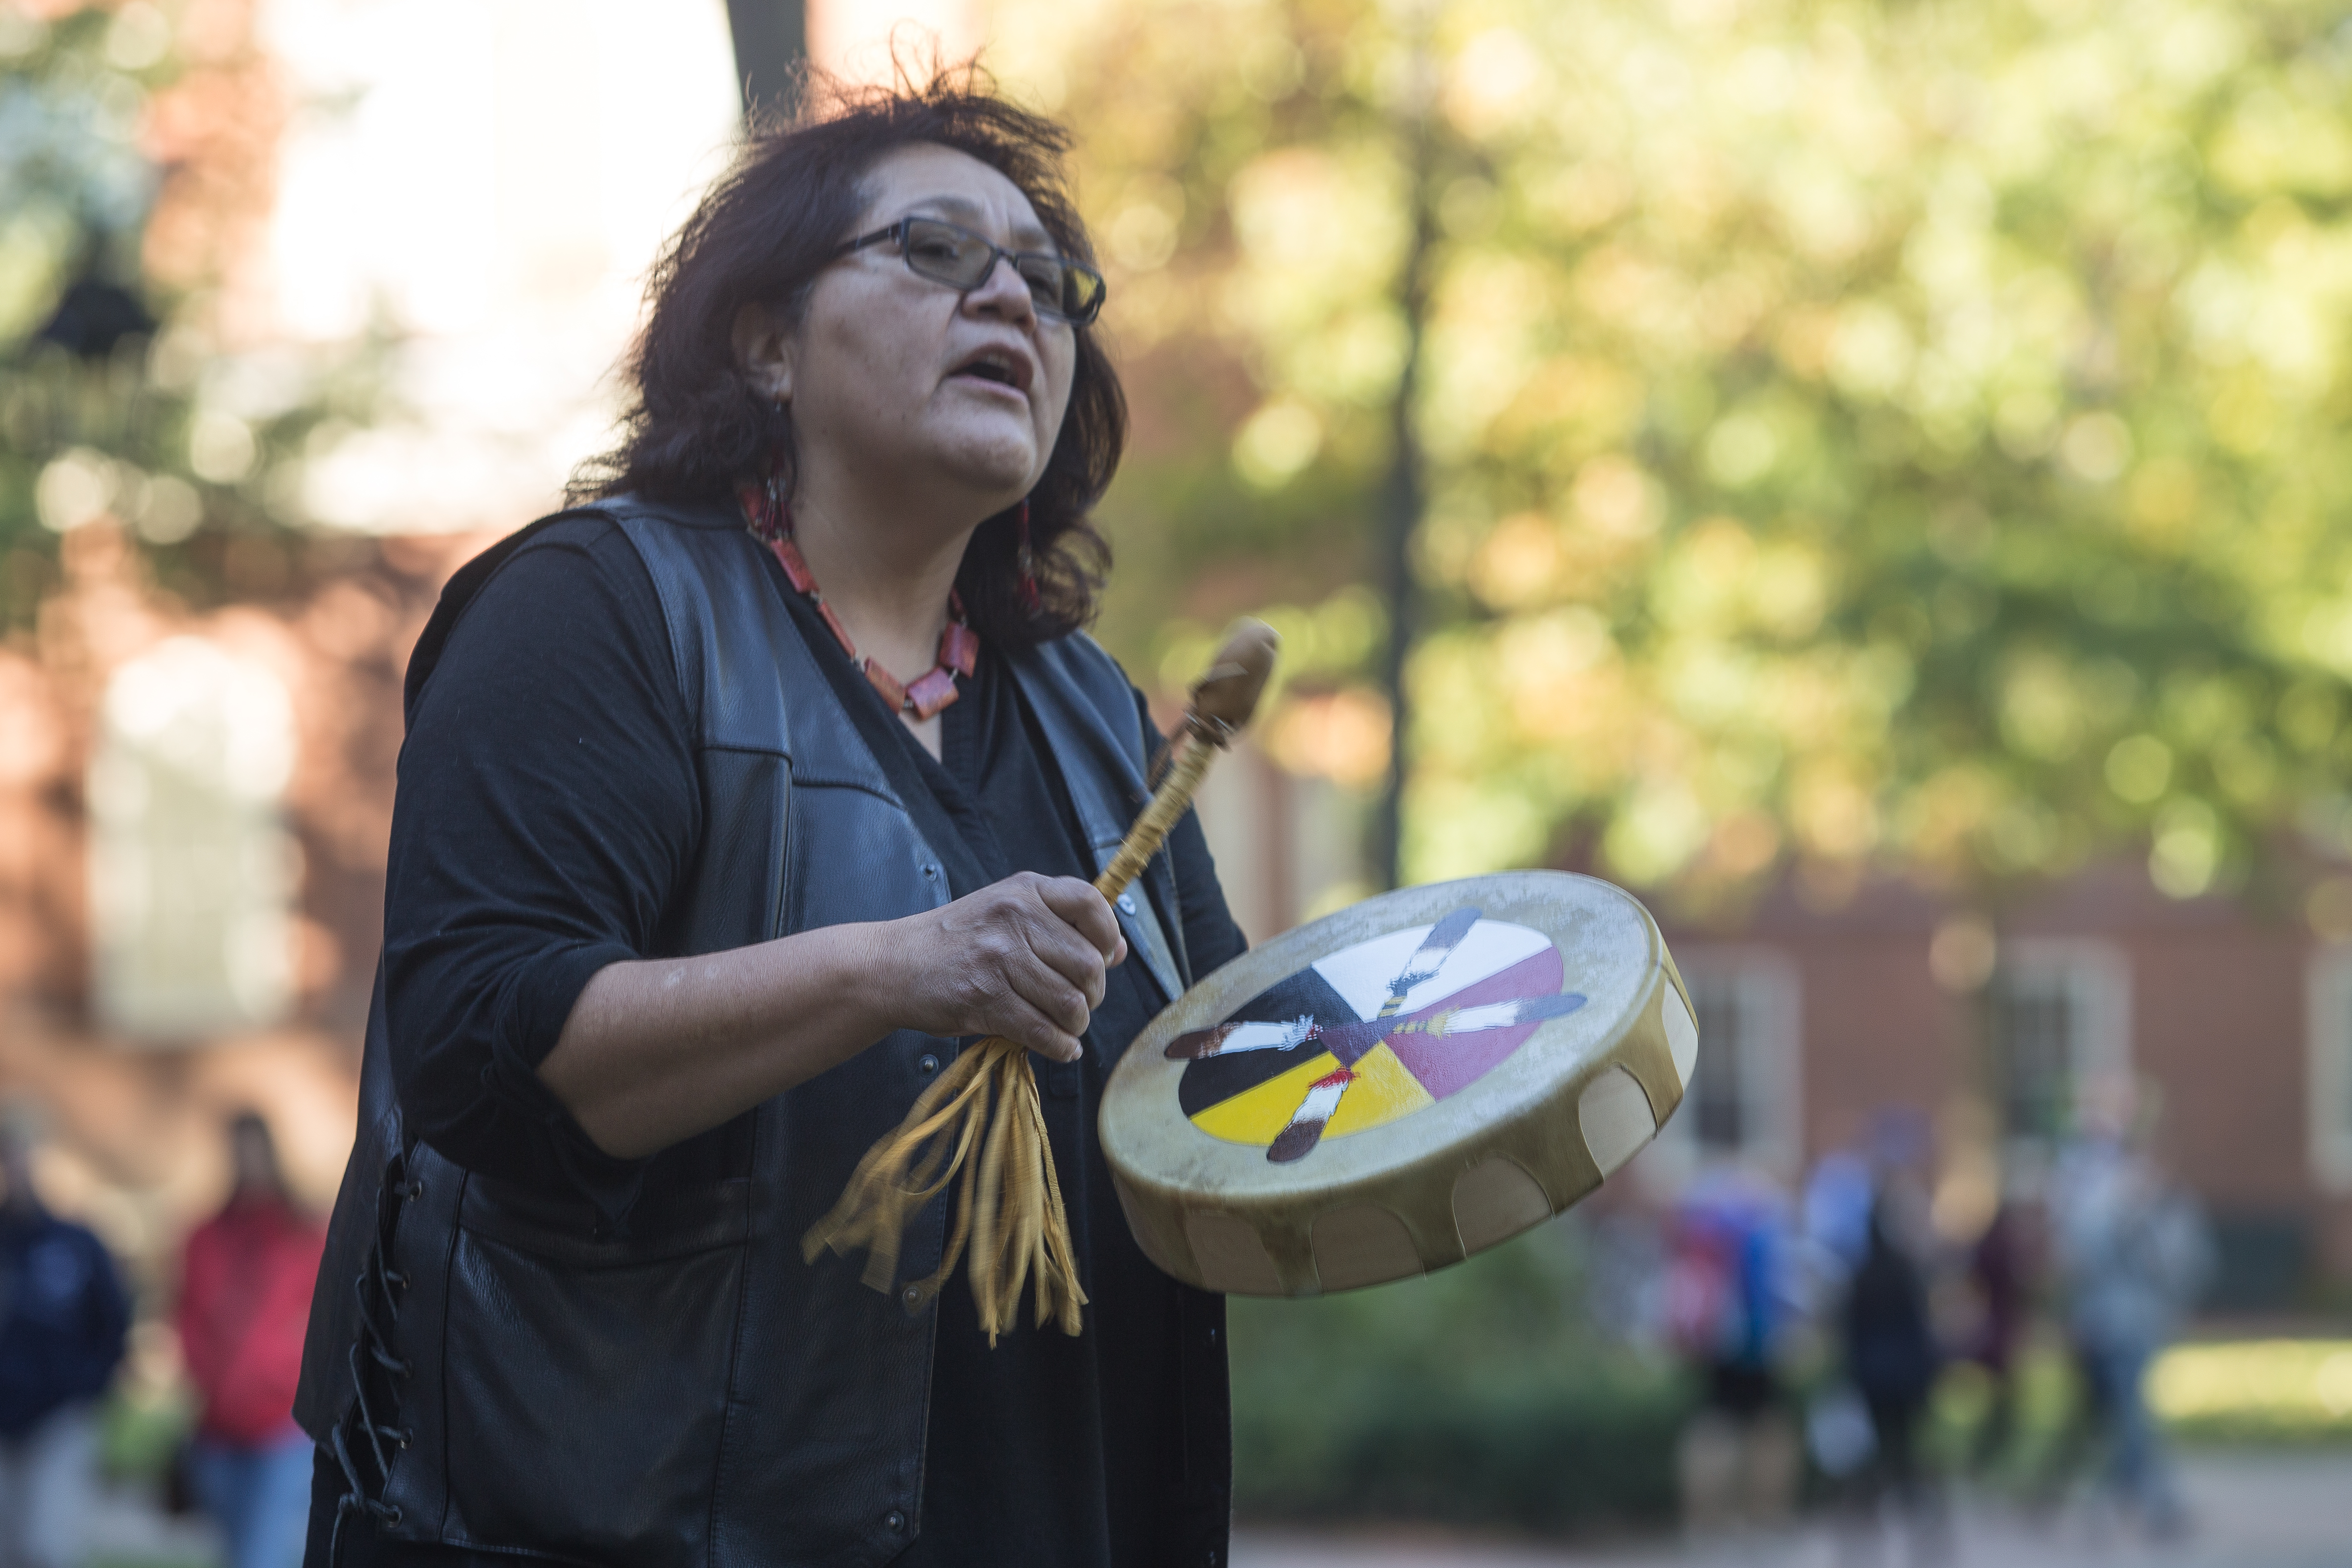 Gerri Barney performs at the Indigenous Peoples' Day celebration at Harvard University. Photo by Alexandra Wimley/BU News Service